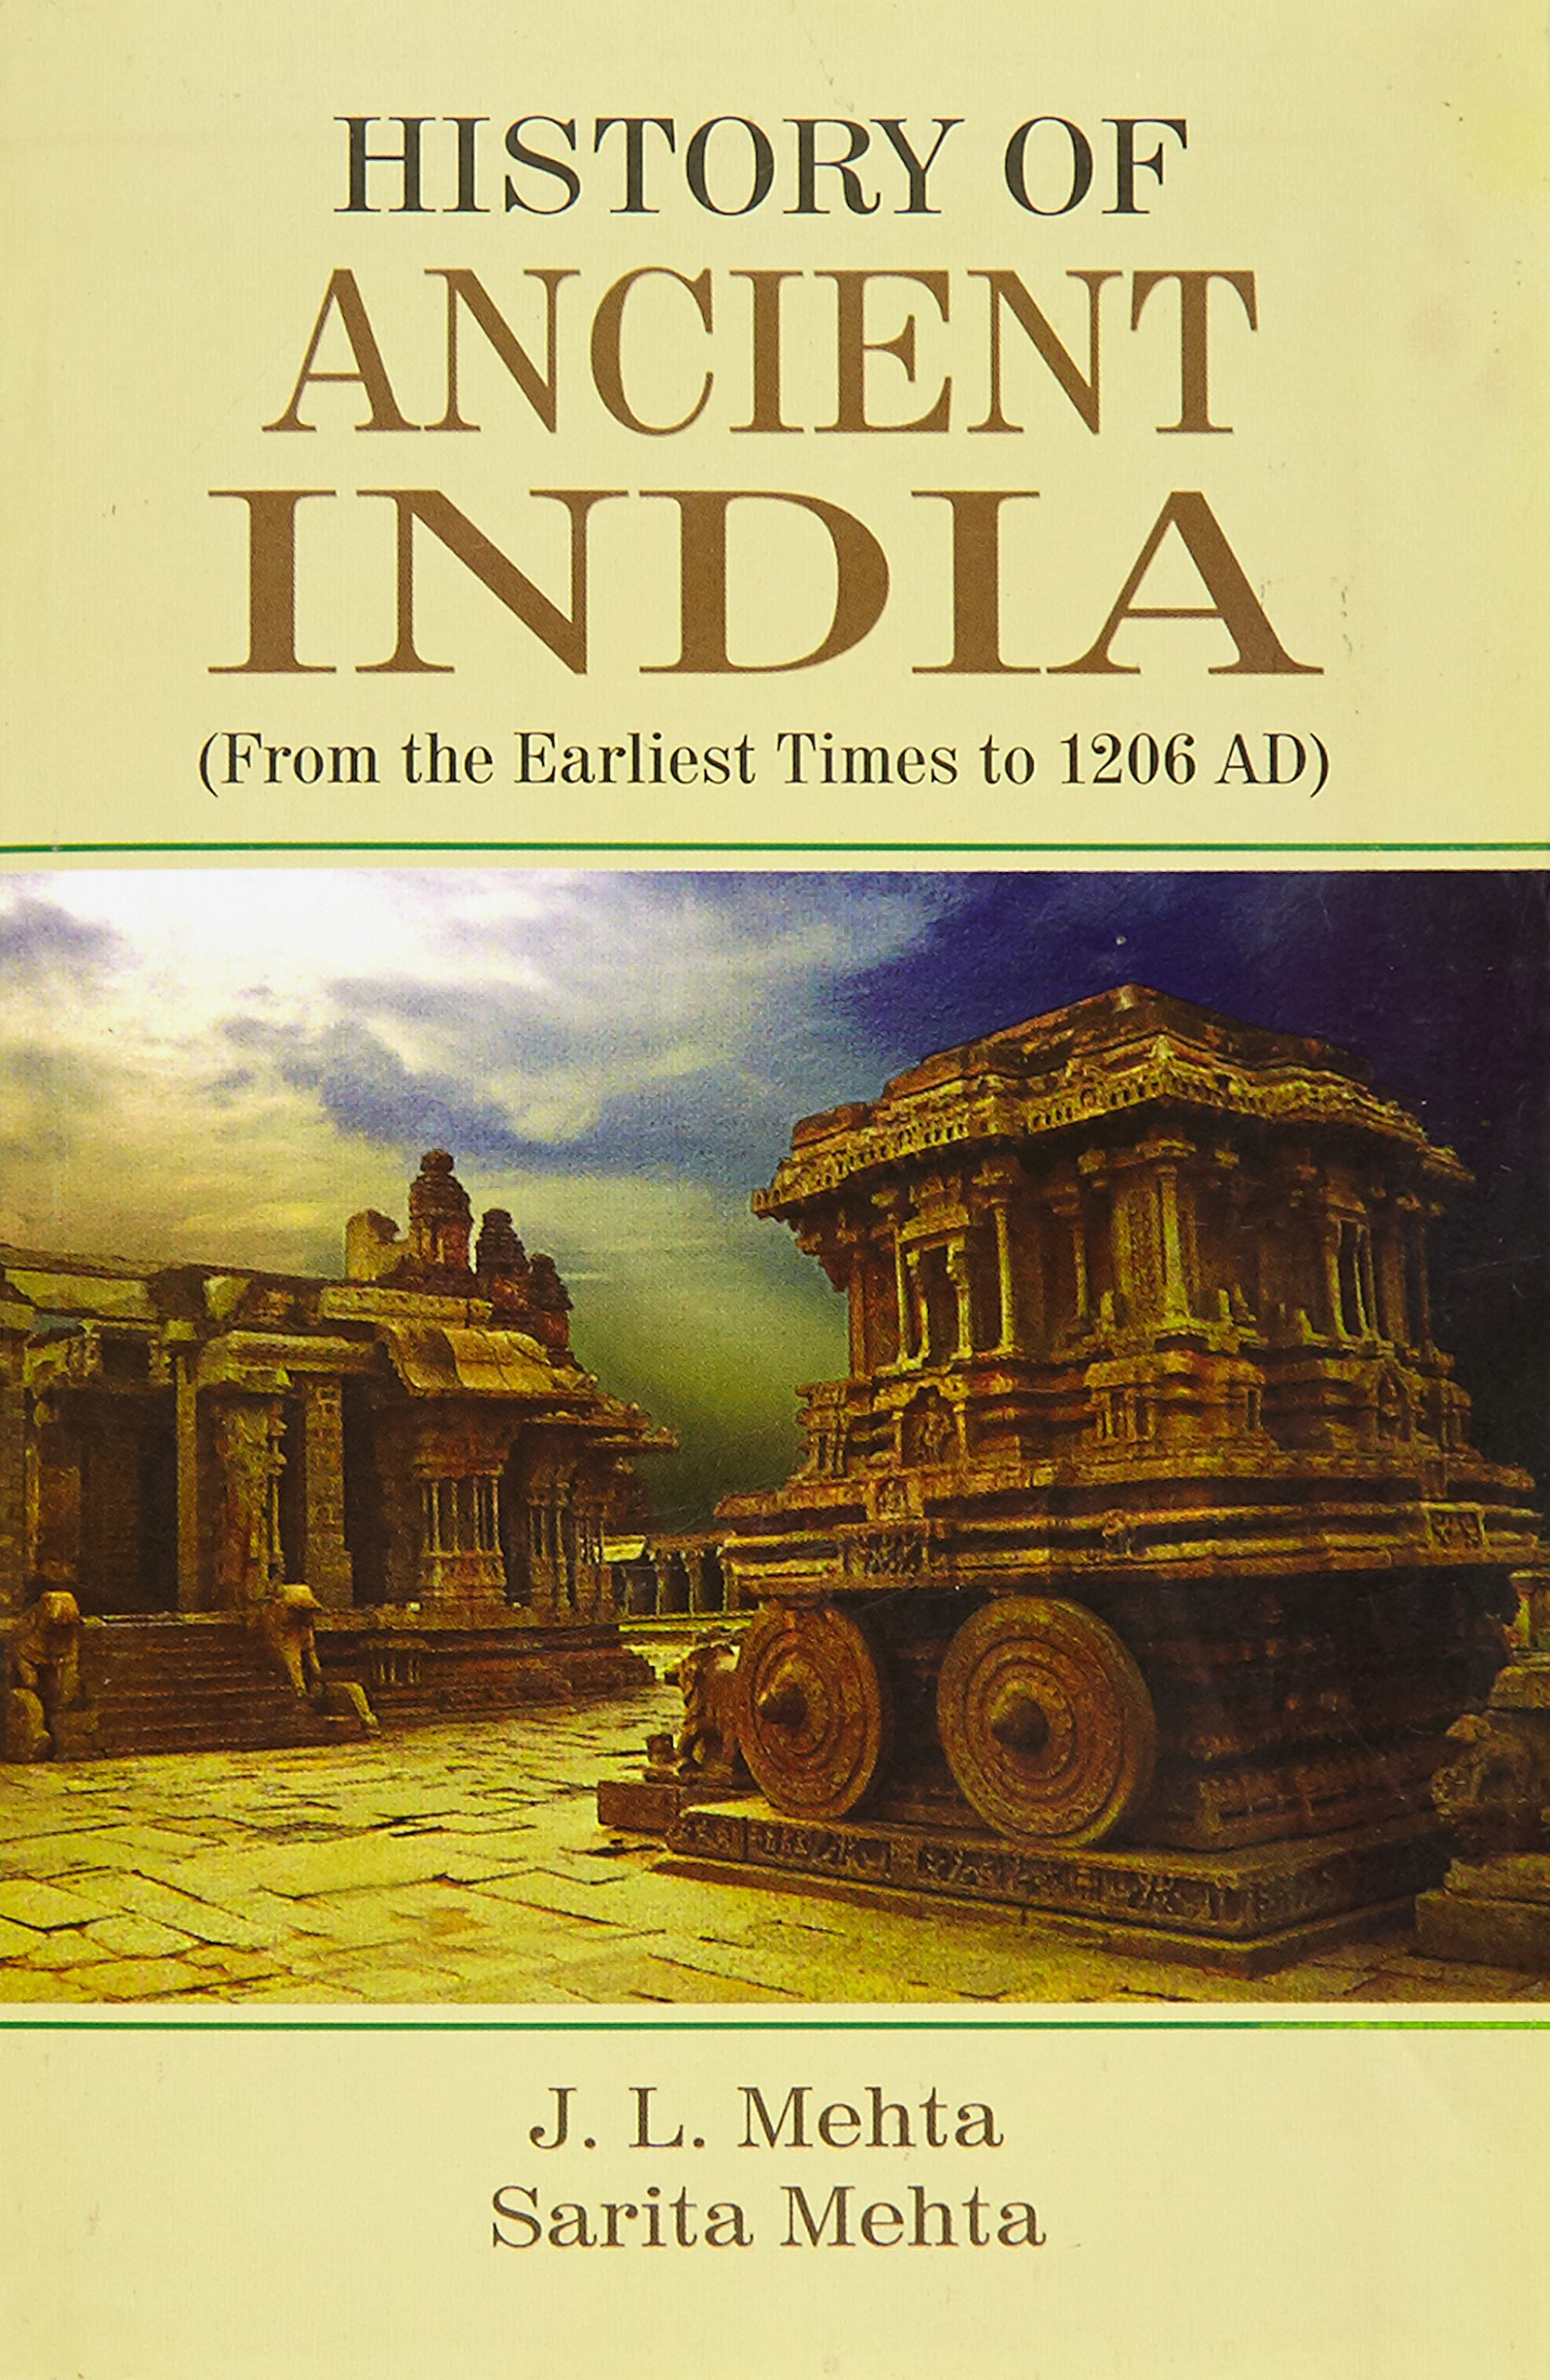 amazon in buy history of ancient india book online at low prices in